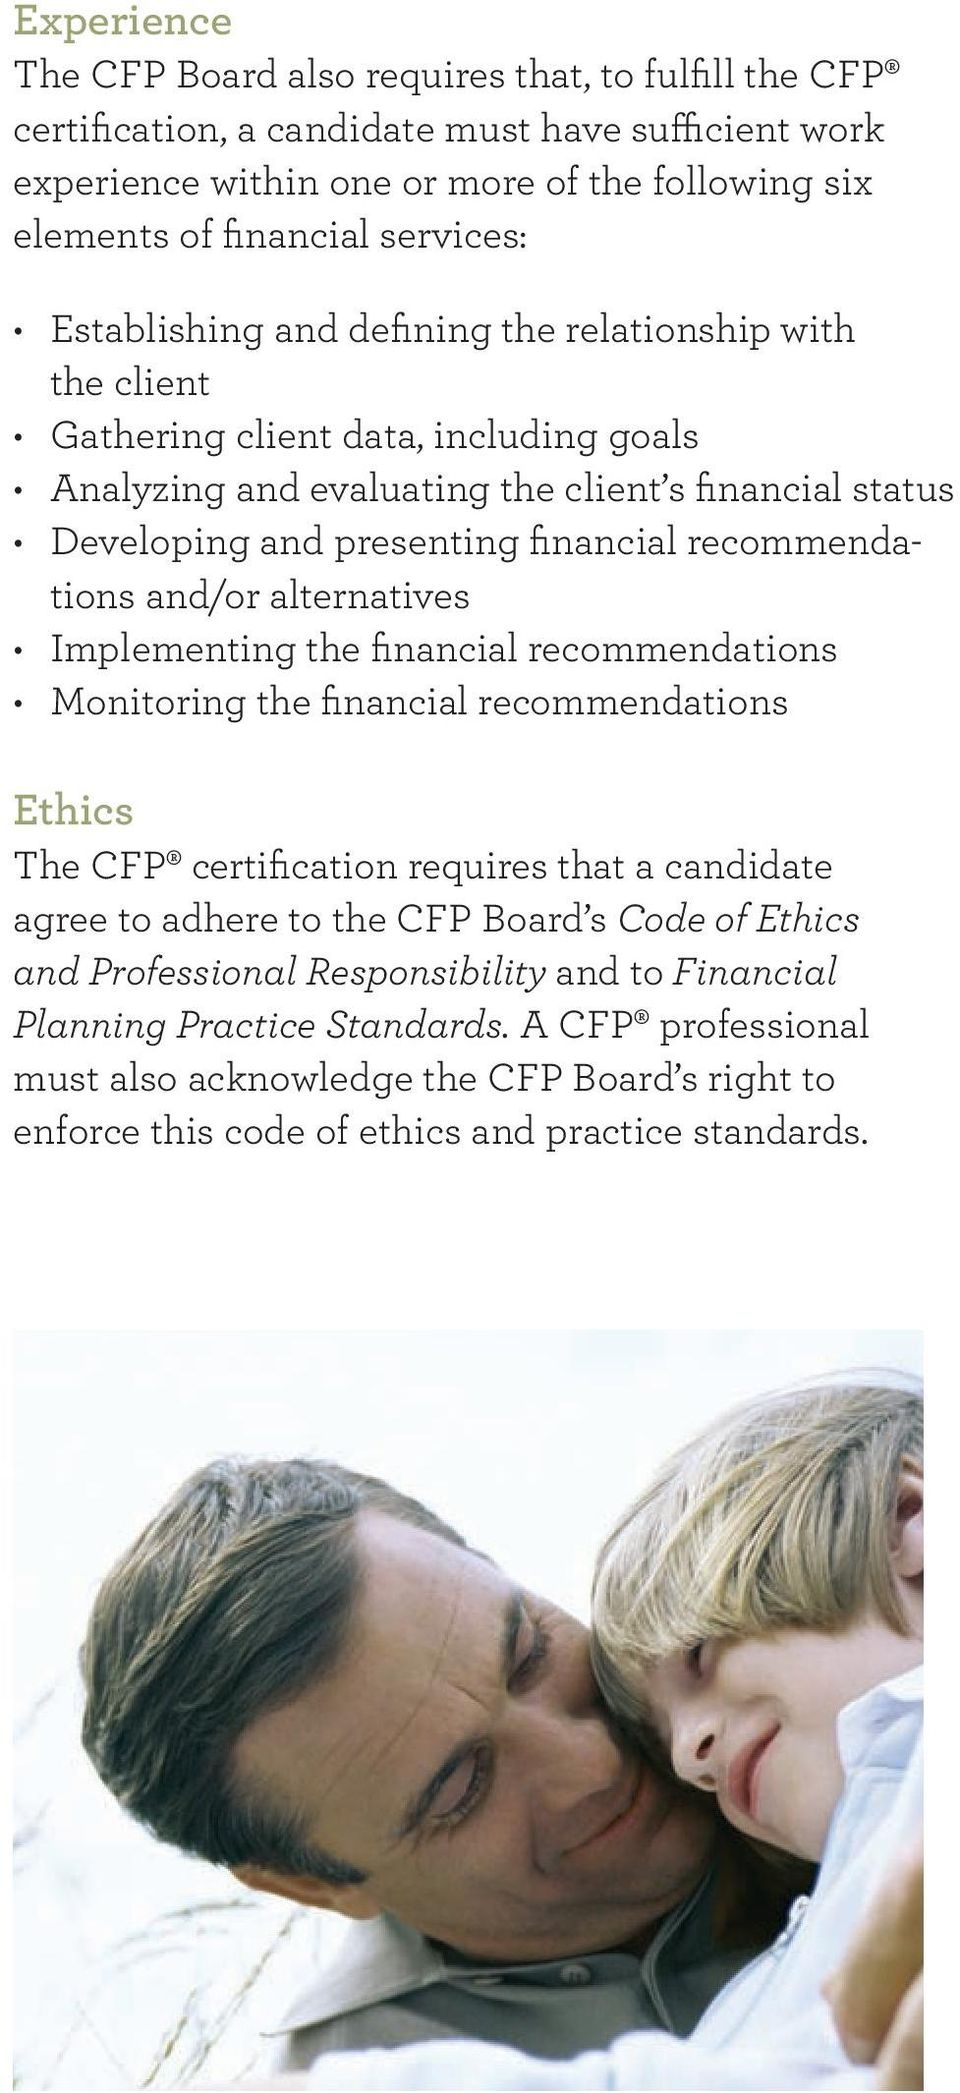 recommendations and/or alternatives Implementing the financial recommendations Monitoring the financial recommendations Ethics The CFP certification requires that a candidate agree to adhere to the